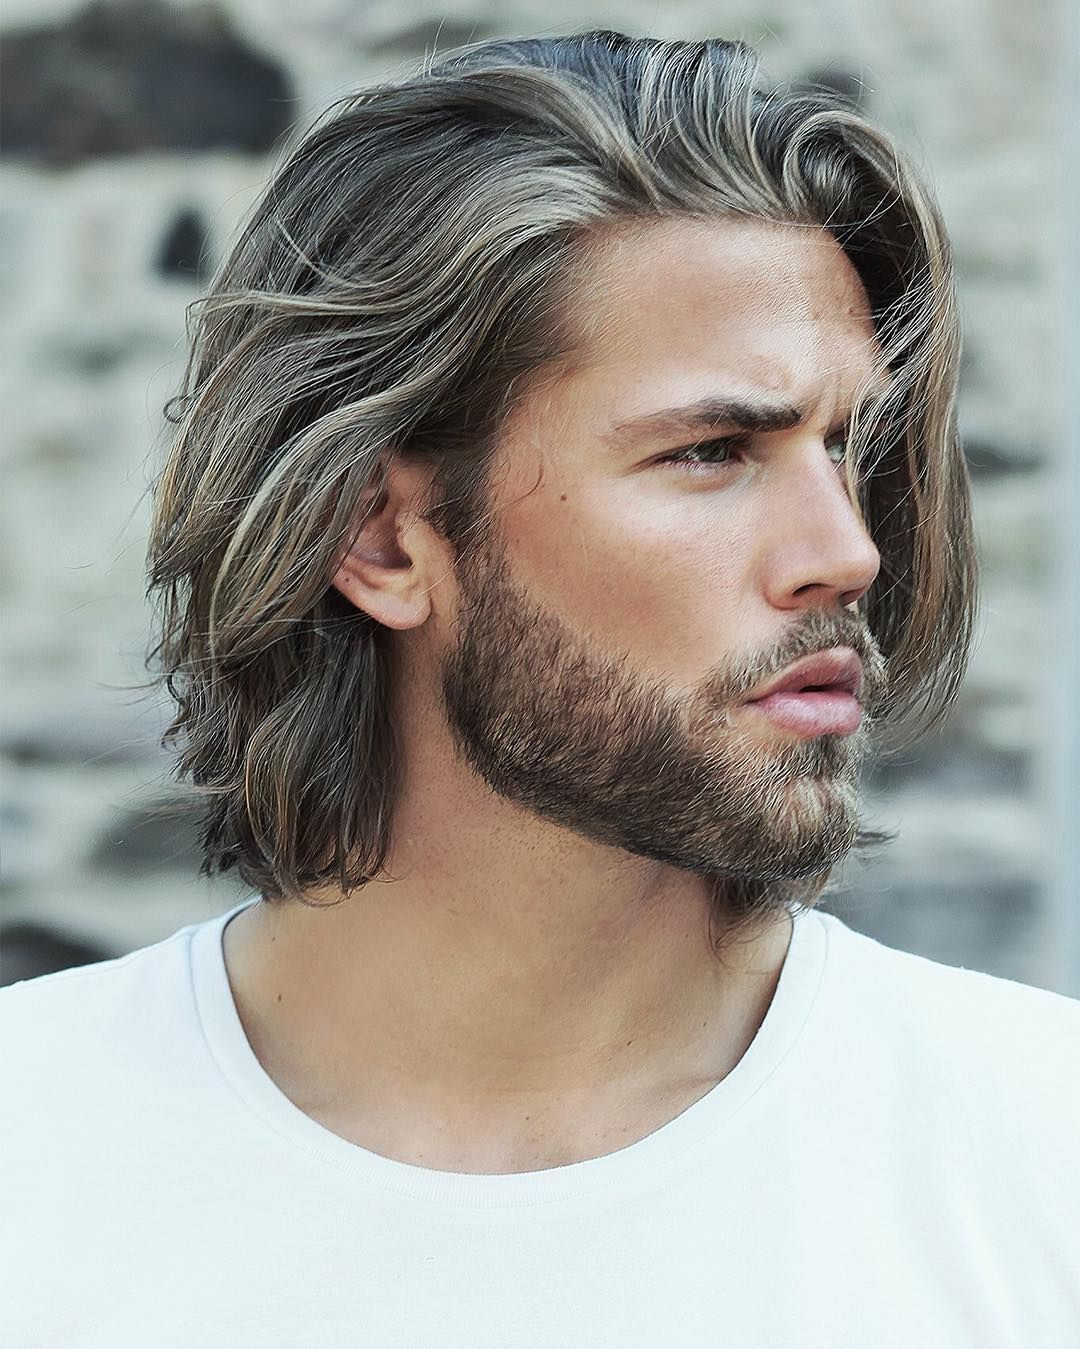 Nice 50 Ideas For Chin Length Hair For Men Easy And Stylish Check More At Http Machohairstyles Com Be Mens Hairstyles Long Hair Styles Men Haircuts For Men